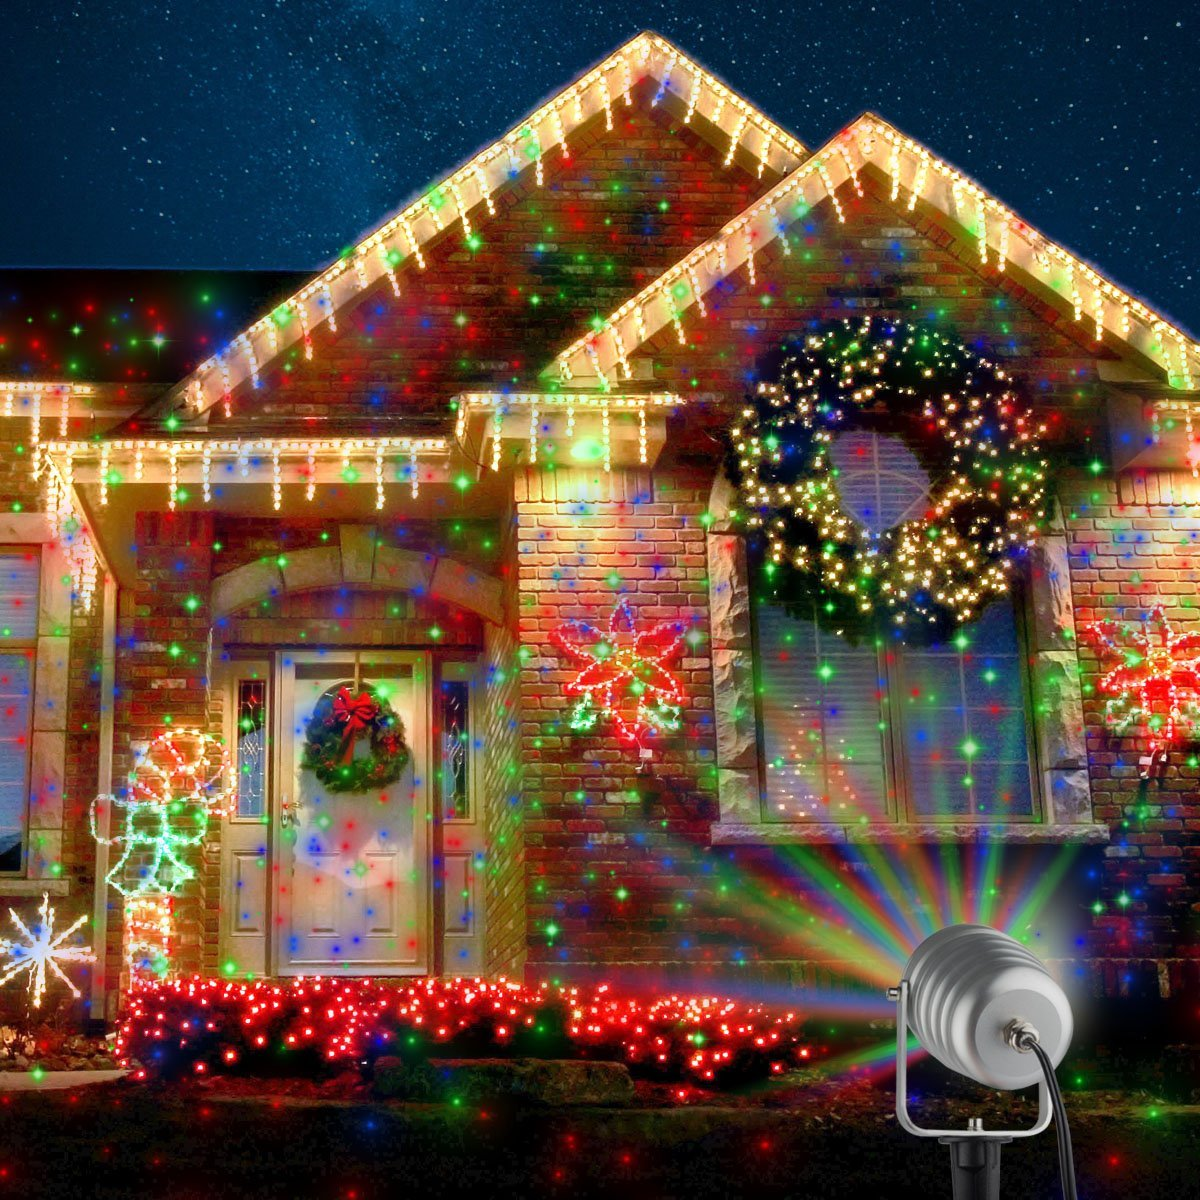 Outdoor Christmas Lighting Ideas: Outdoor Christmas Laser Projector Motion Lights $53.99